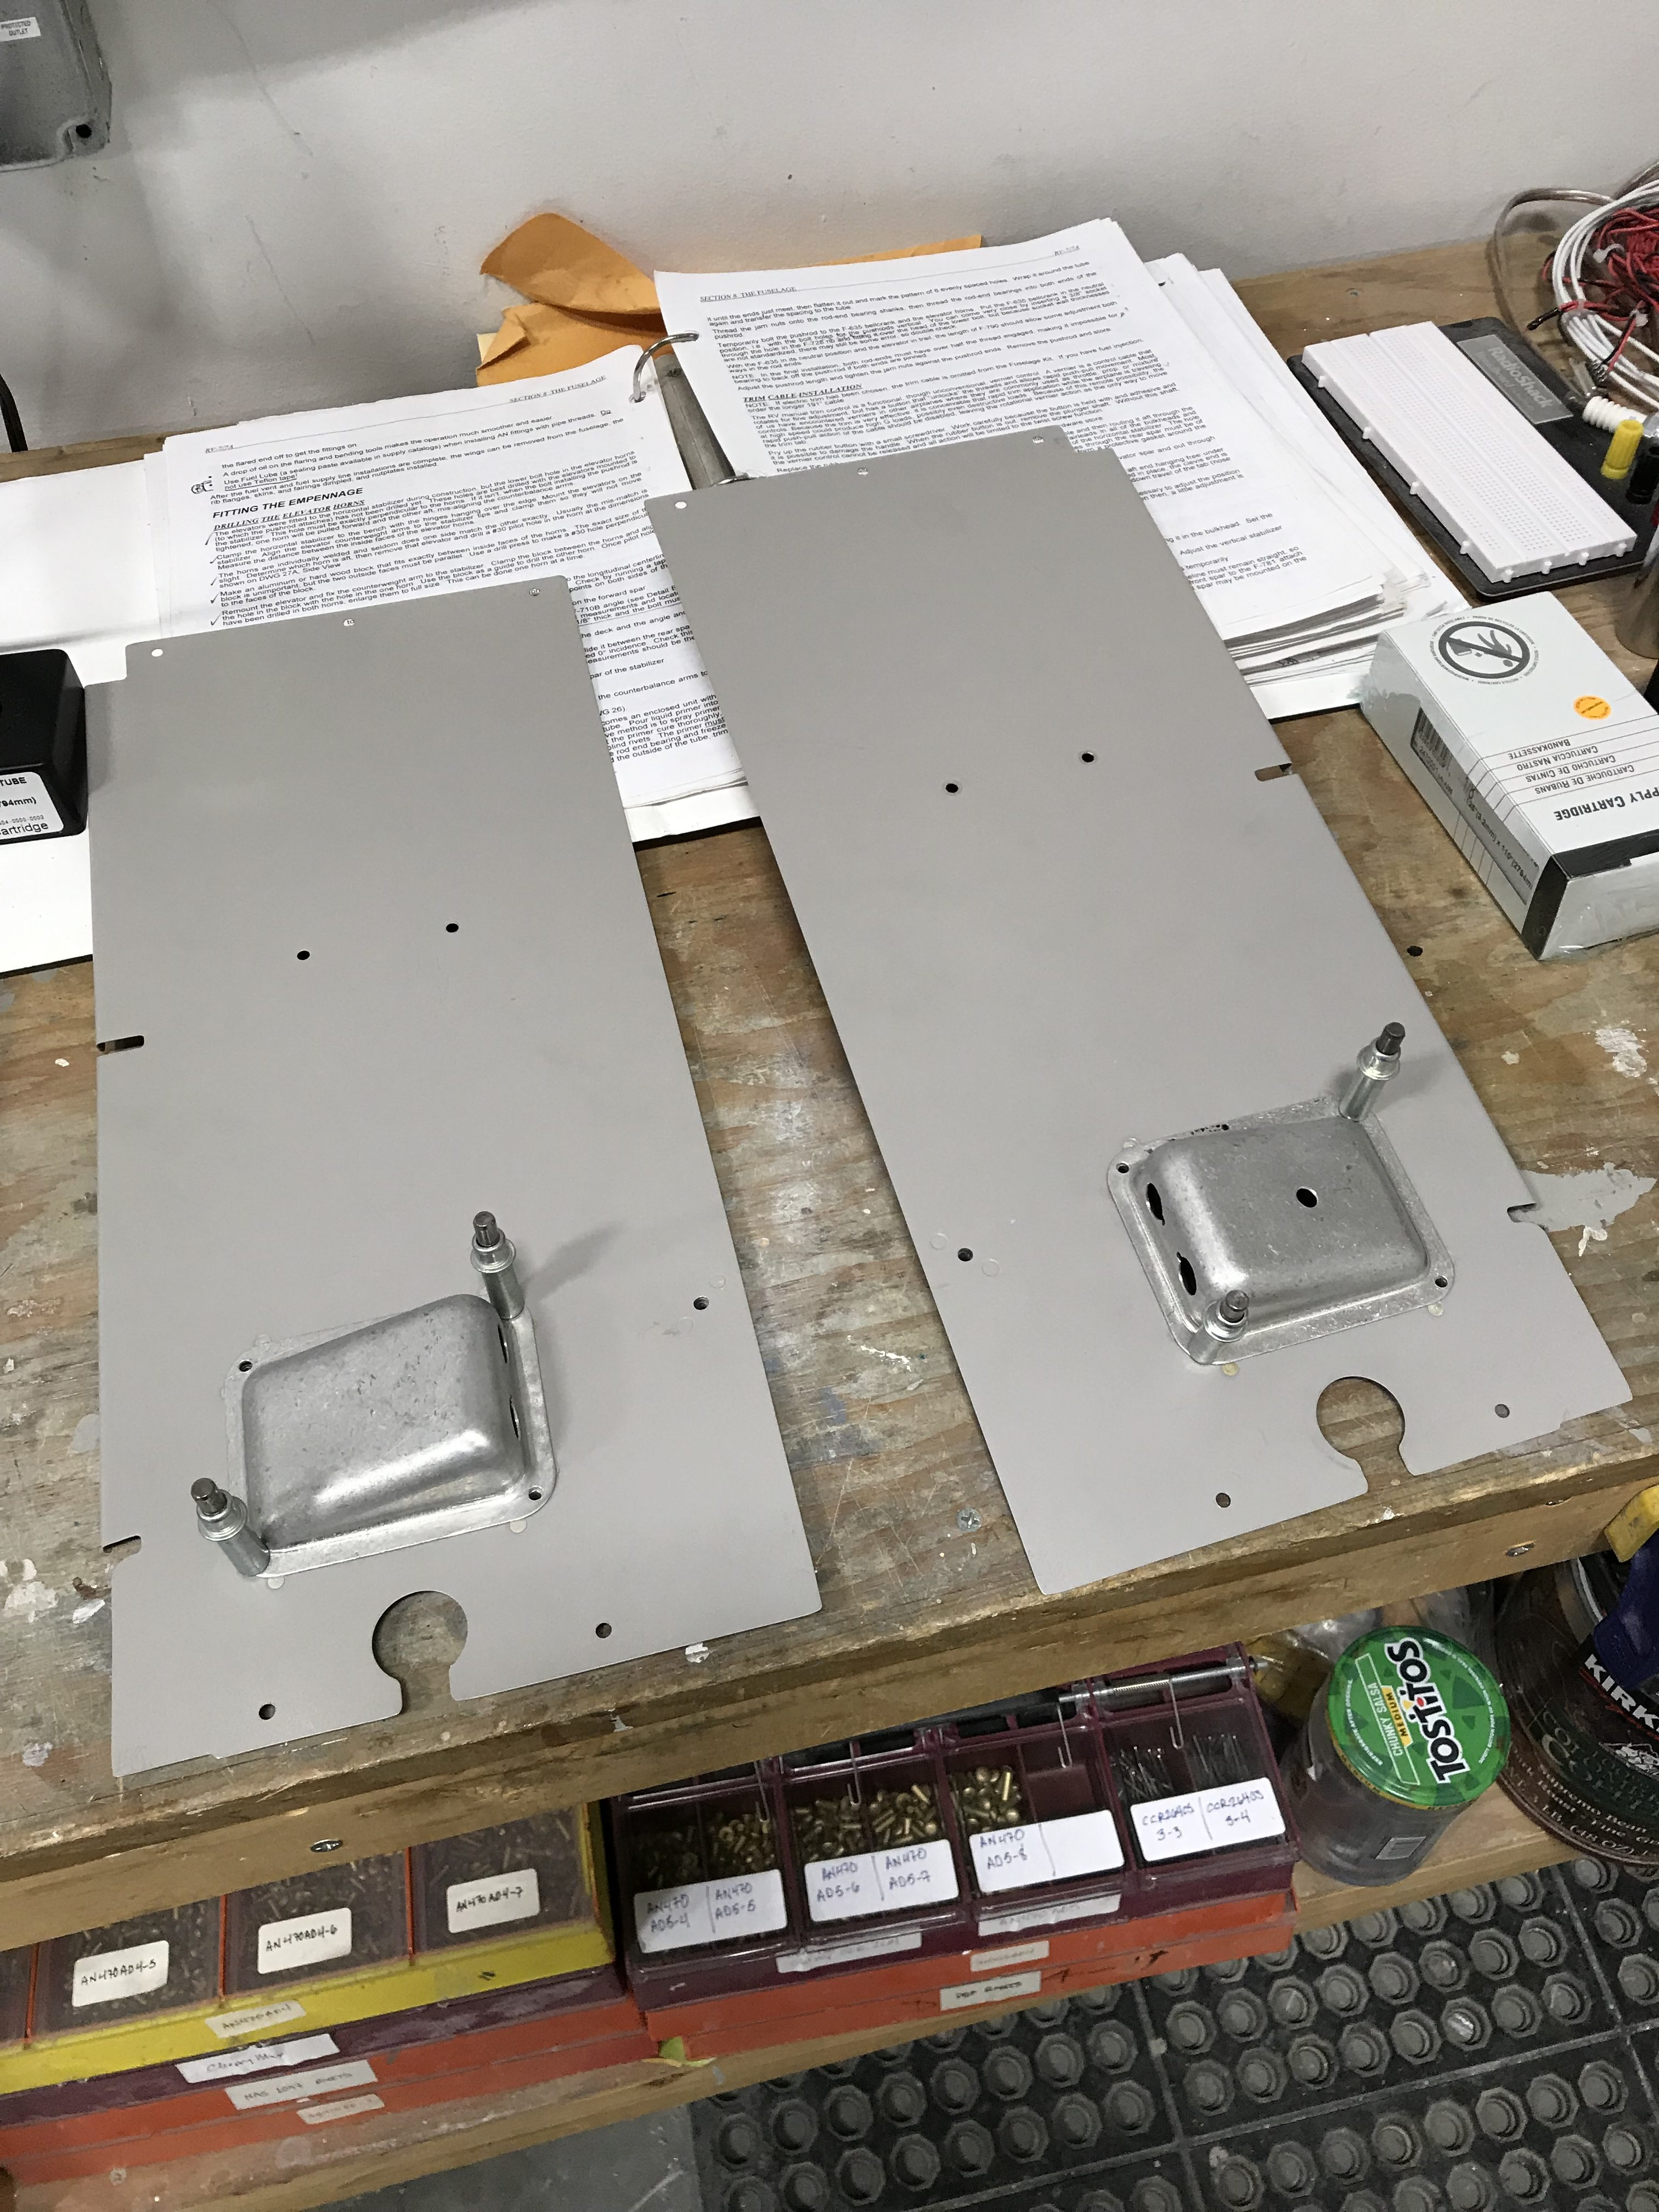 Mounting headset jack holders